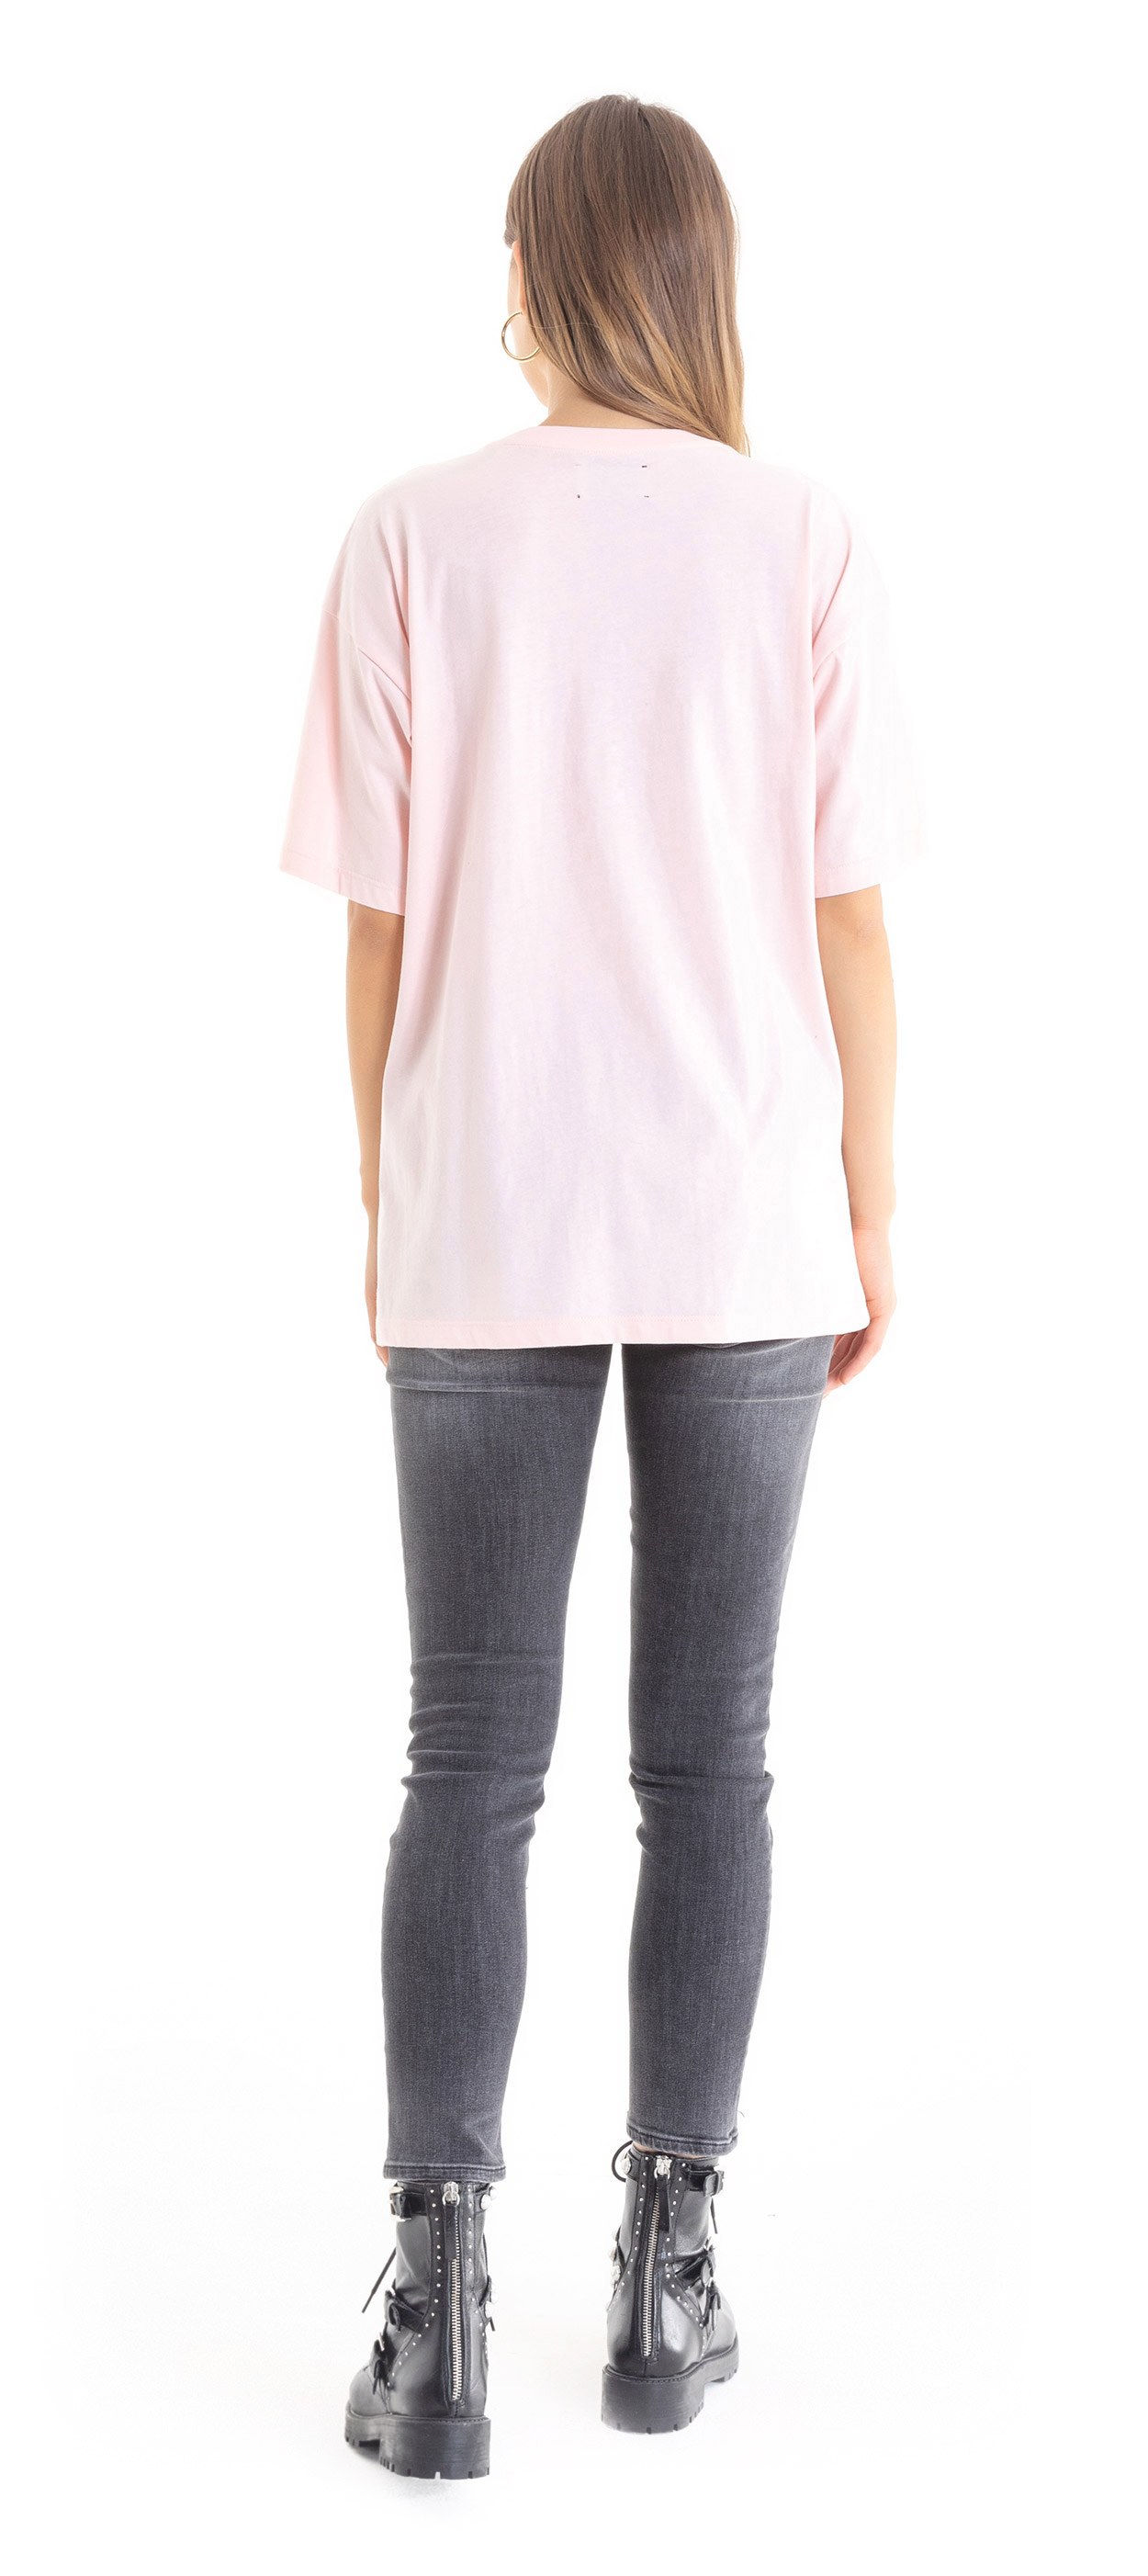 T-SHIRT - GBD2722 - GAELLE PARIS